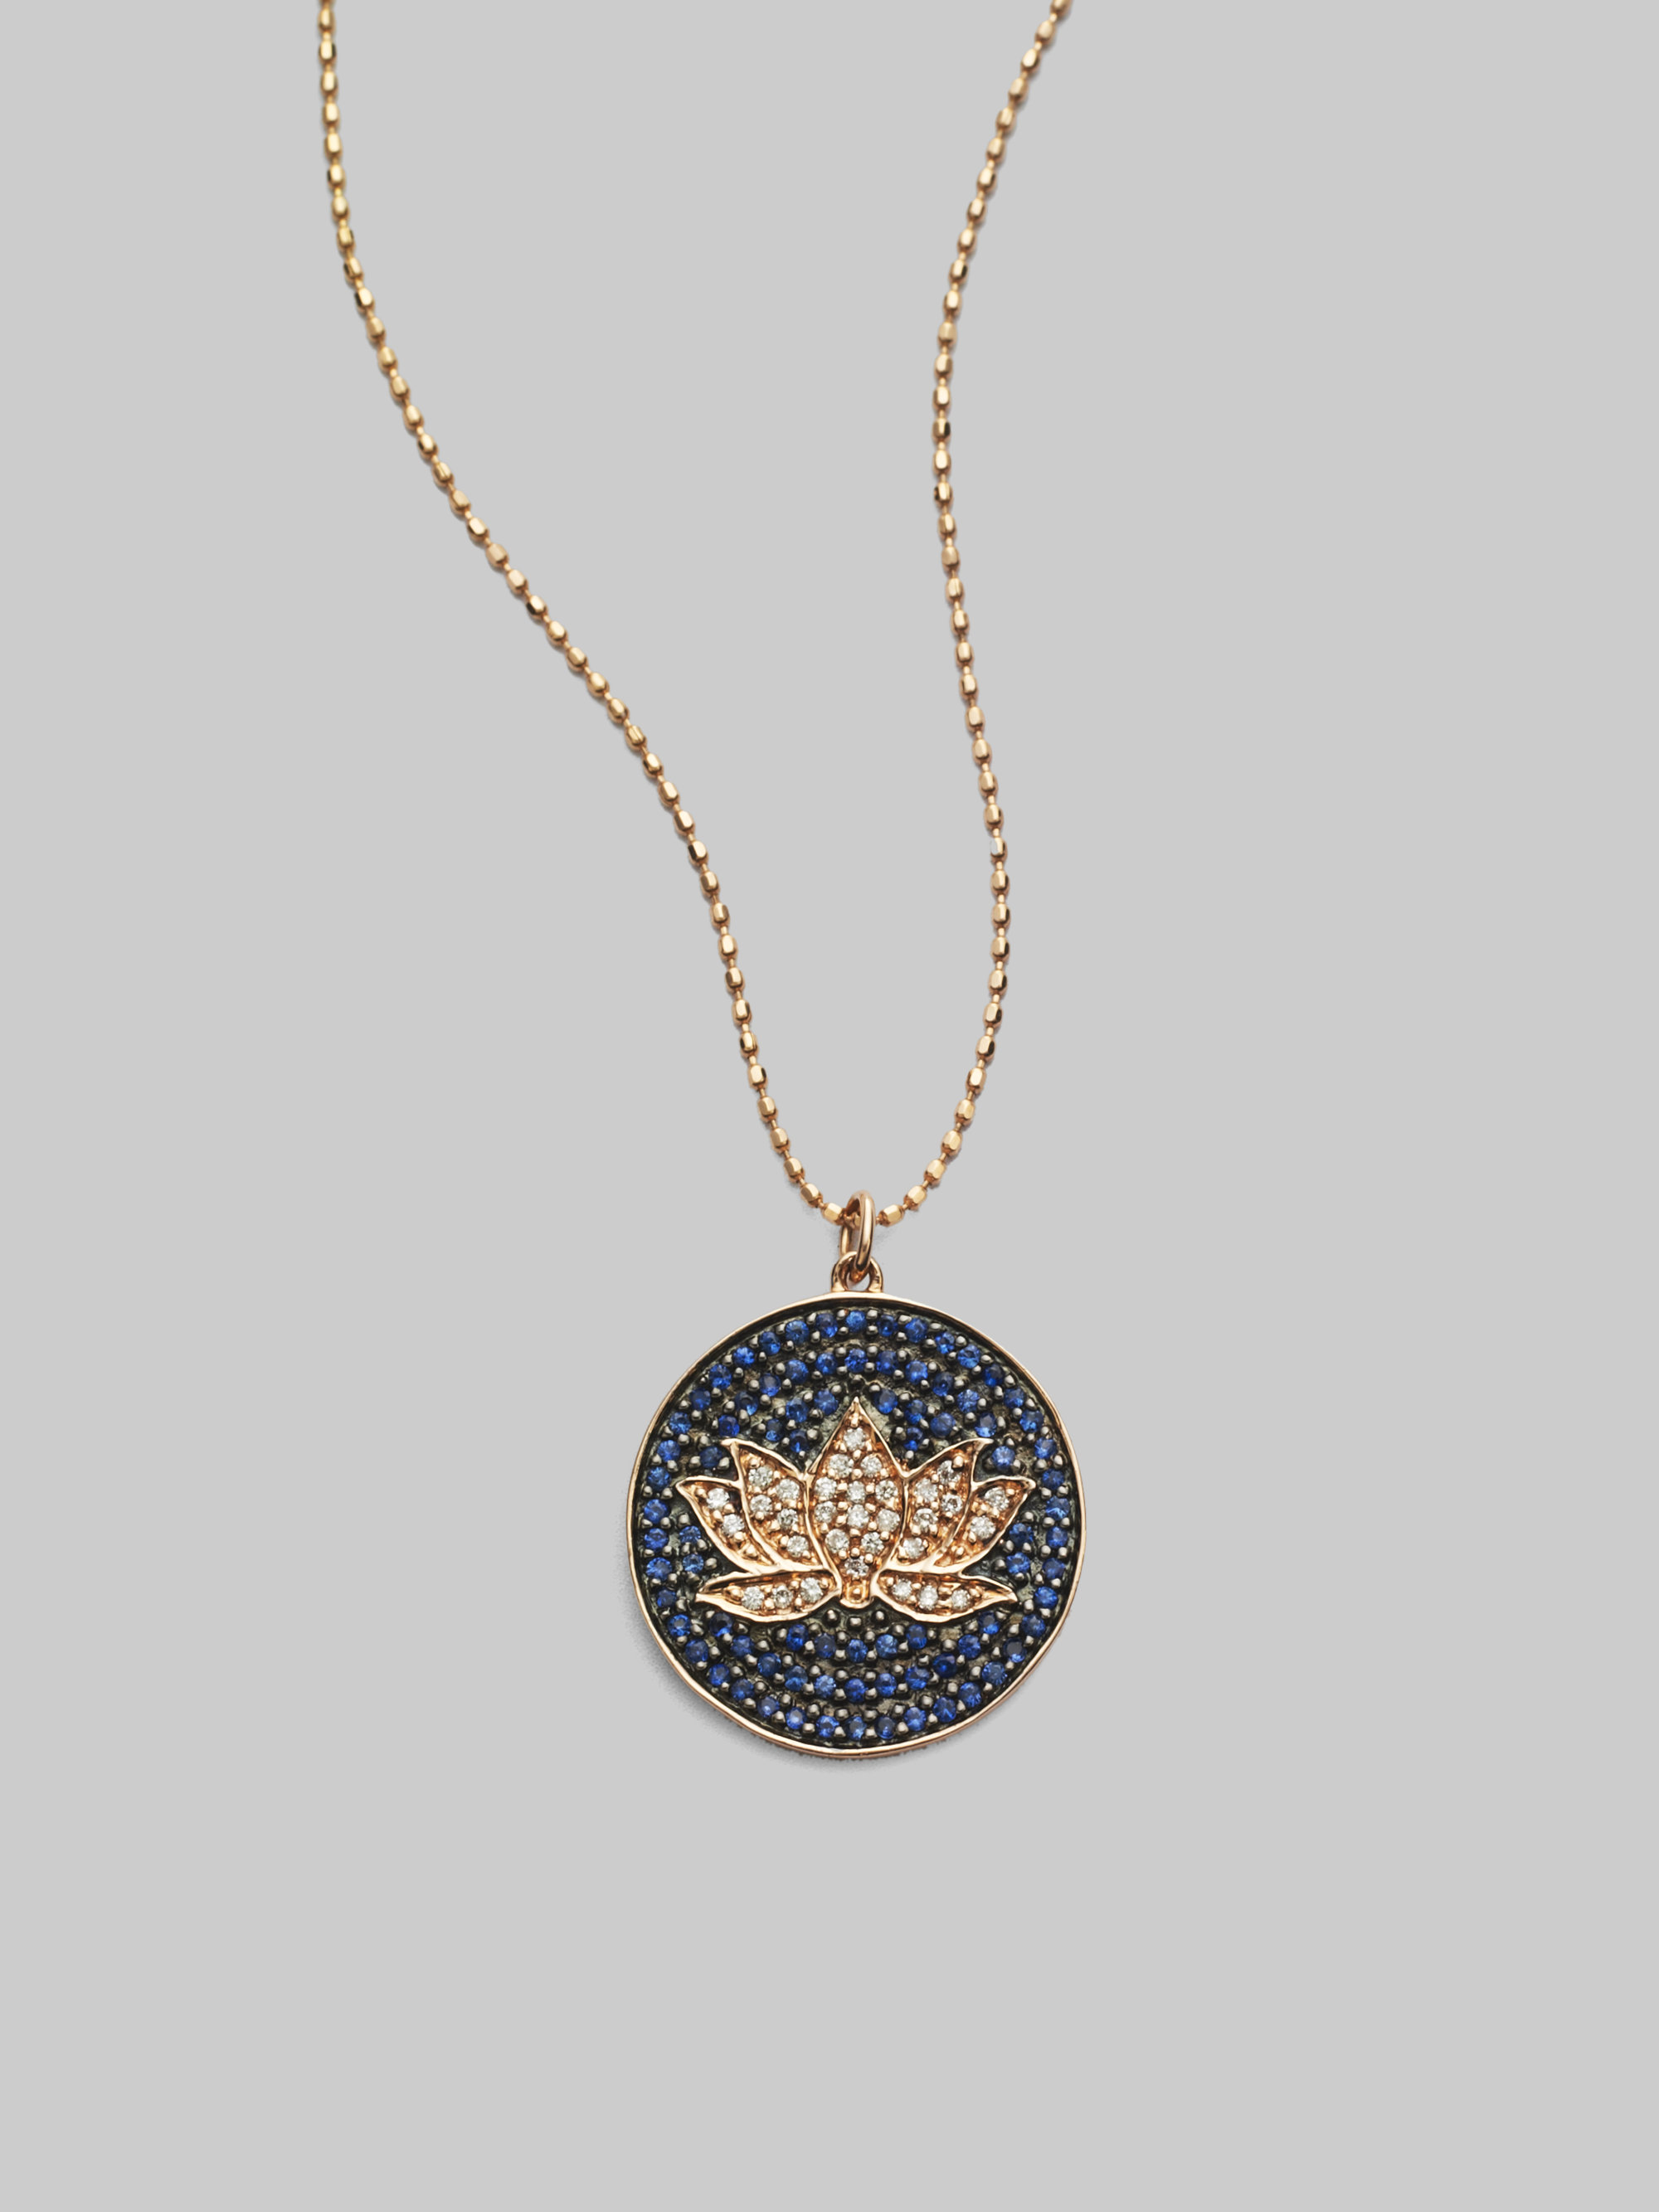 Sydney Evan Diamond Sapphire 14k Gold Lotus Disc Necklace